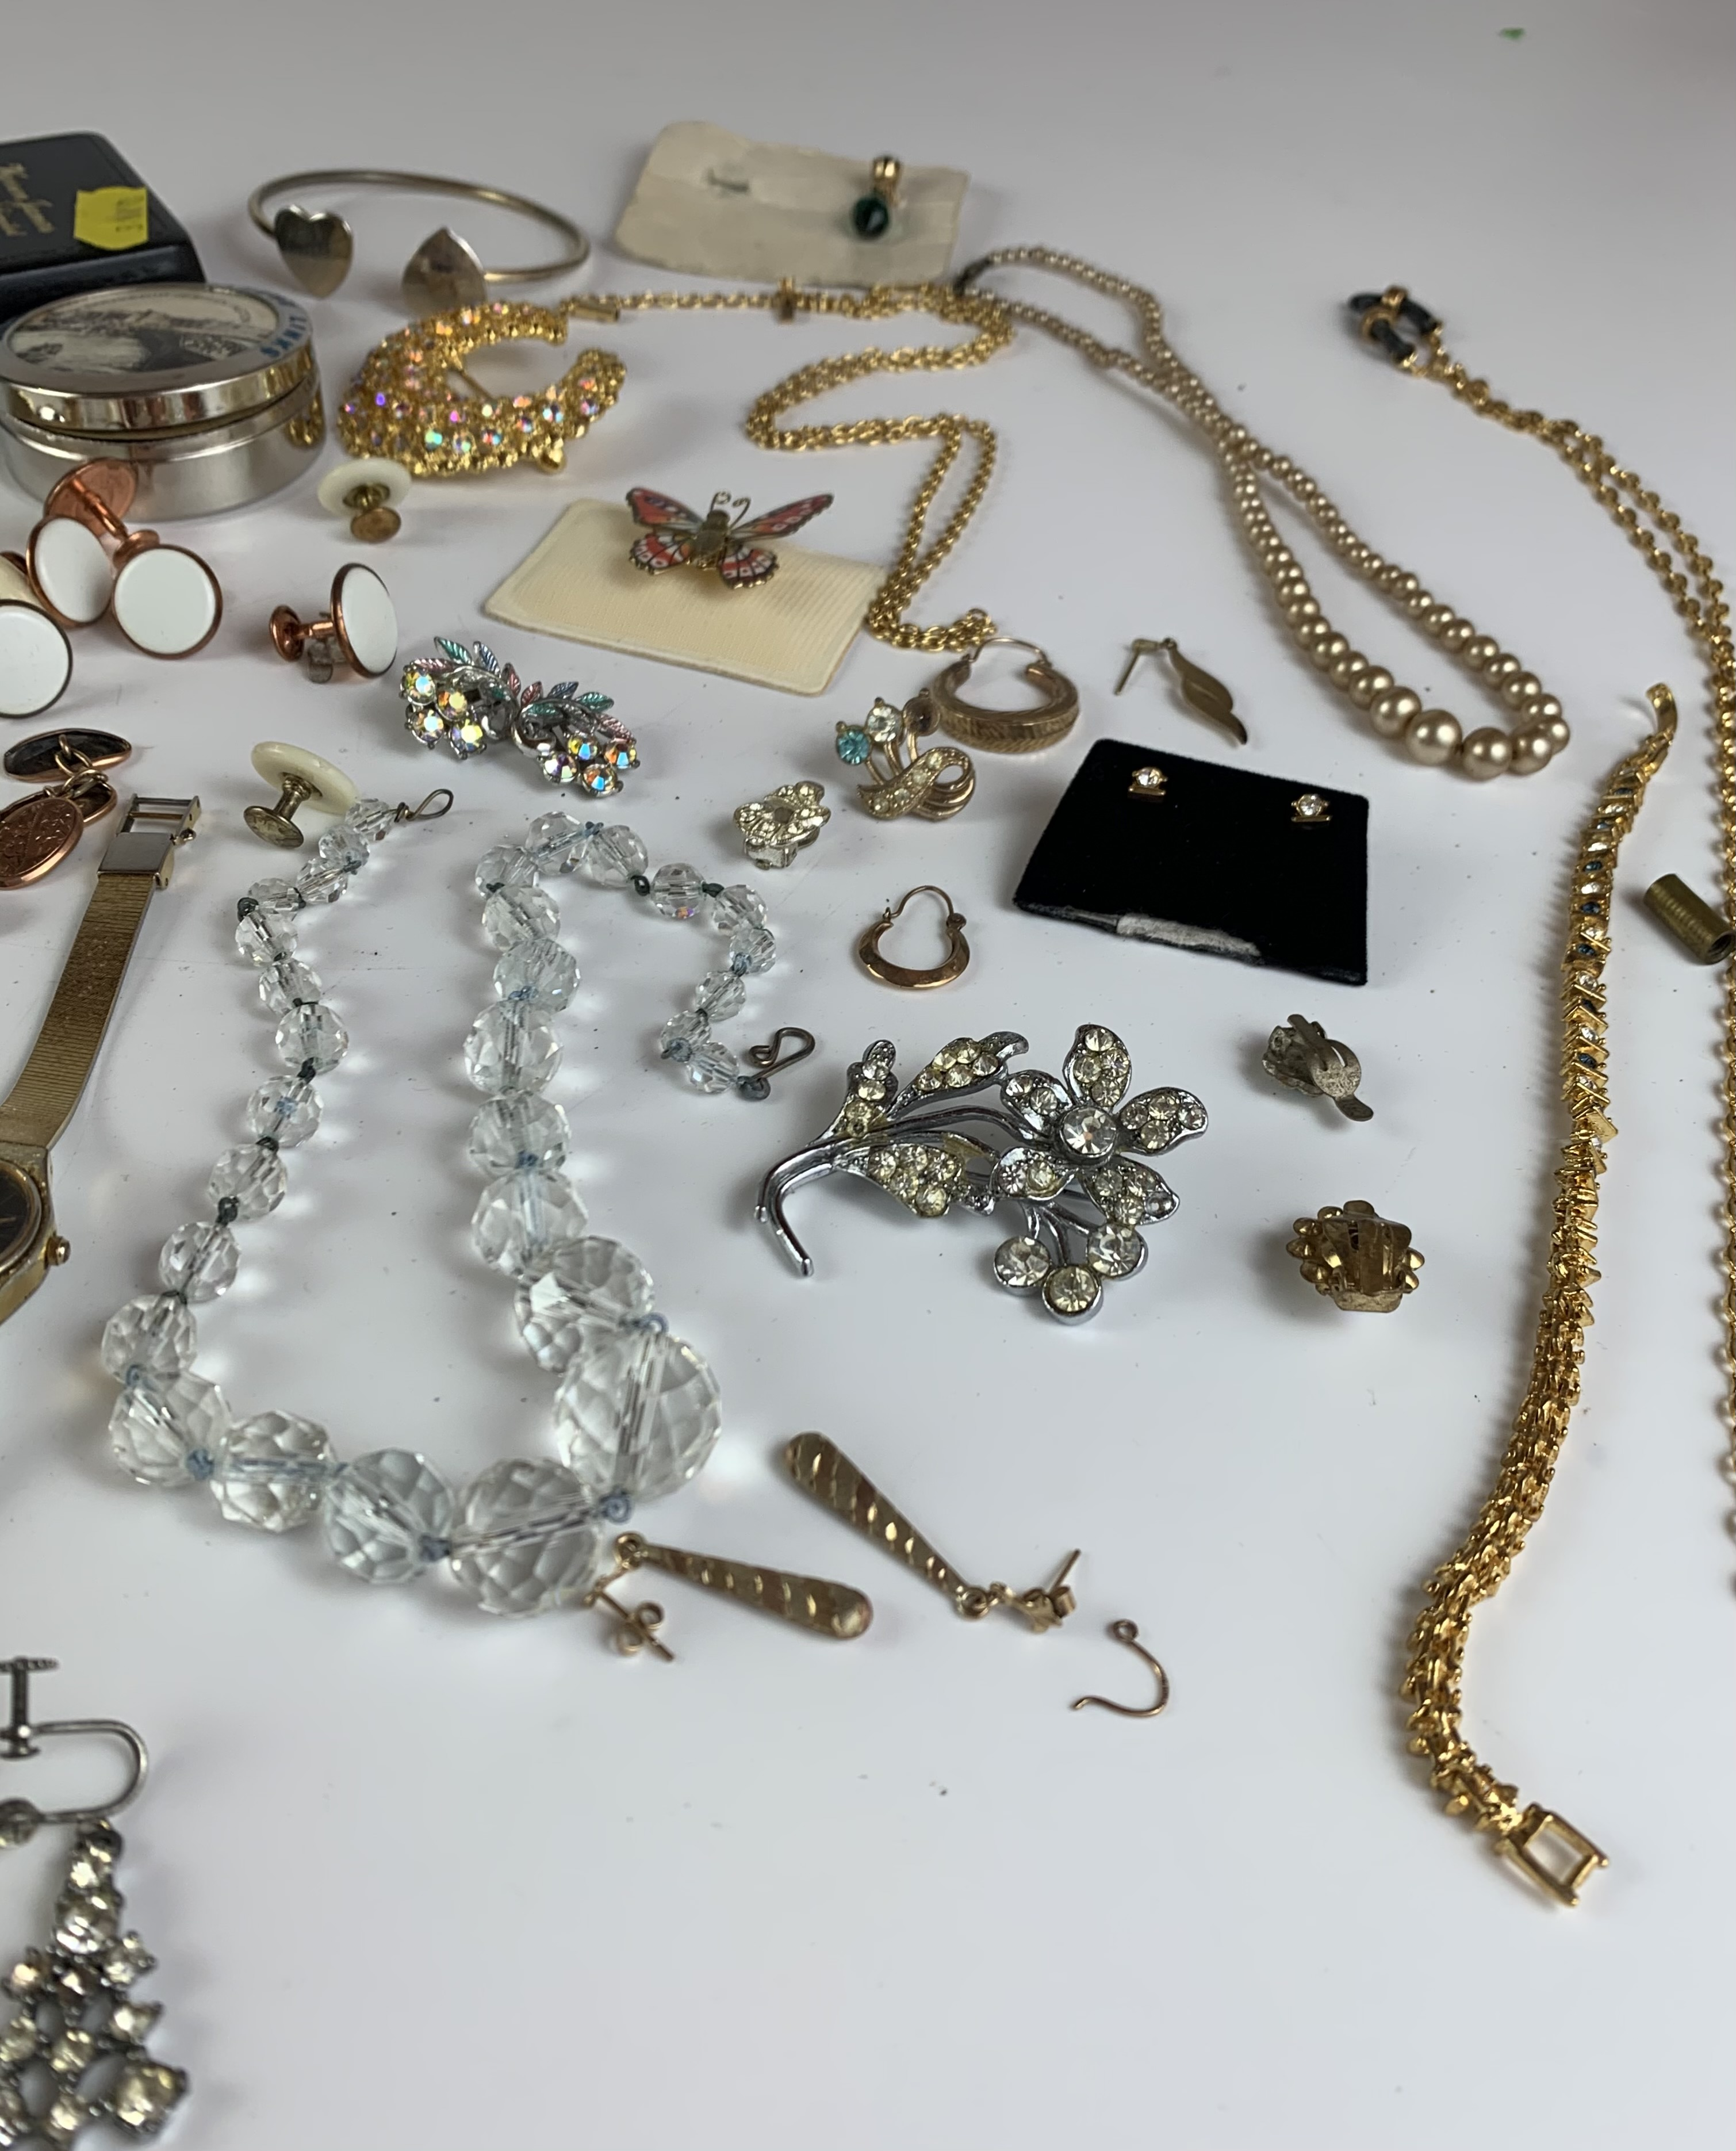 Large bag of assorted dress jewellery including necklaces, bracelets, brooches, earrings etc. - Image 9 of 11